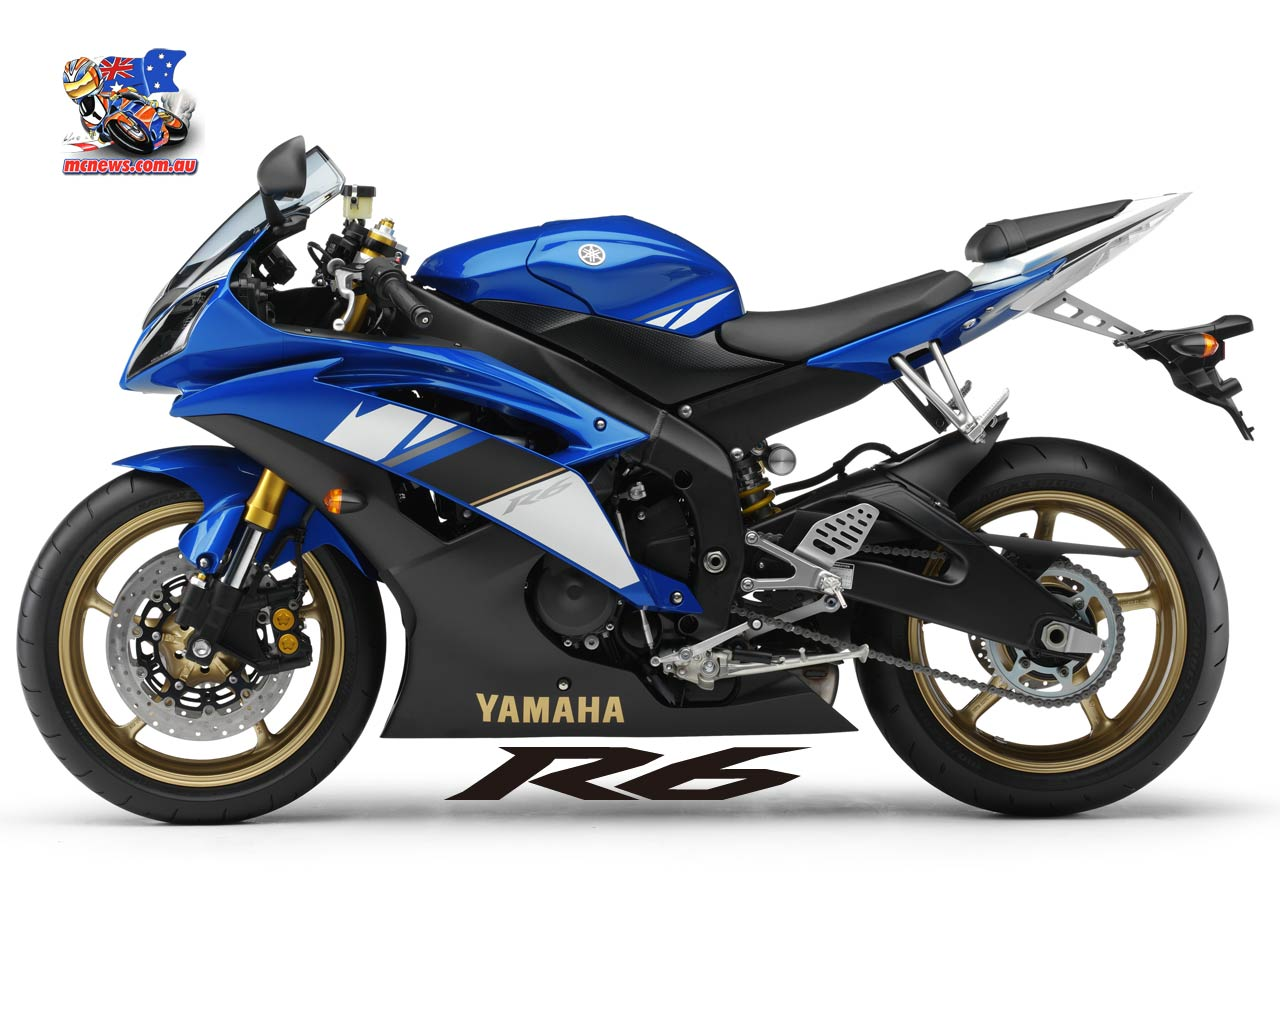 Yamaha R6 Wallpaper 22285 Hd Wallpapers in Bikes   Imagescicom 1280x1024